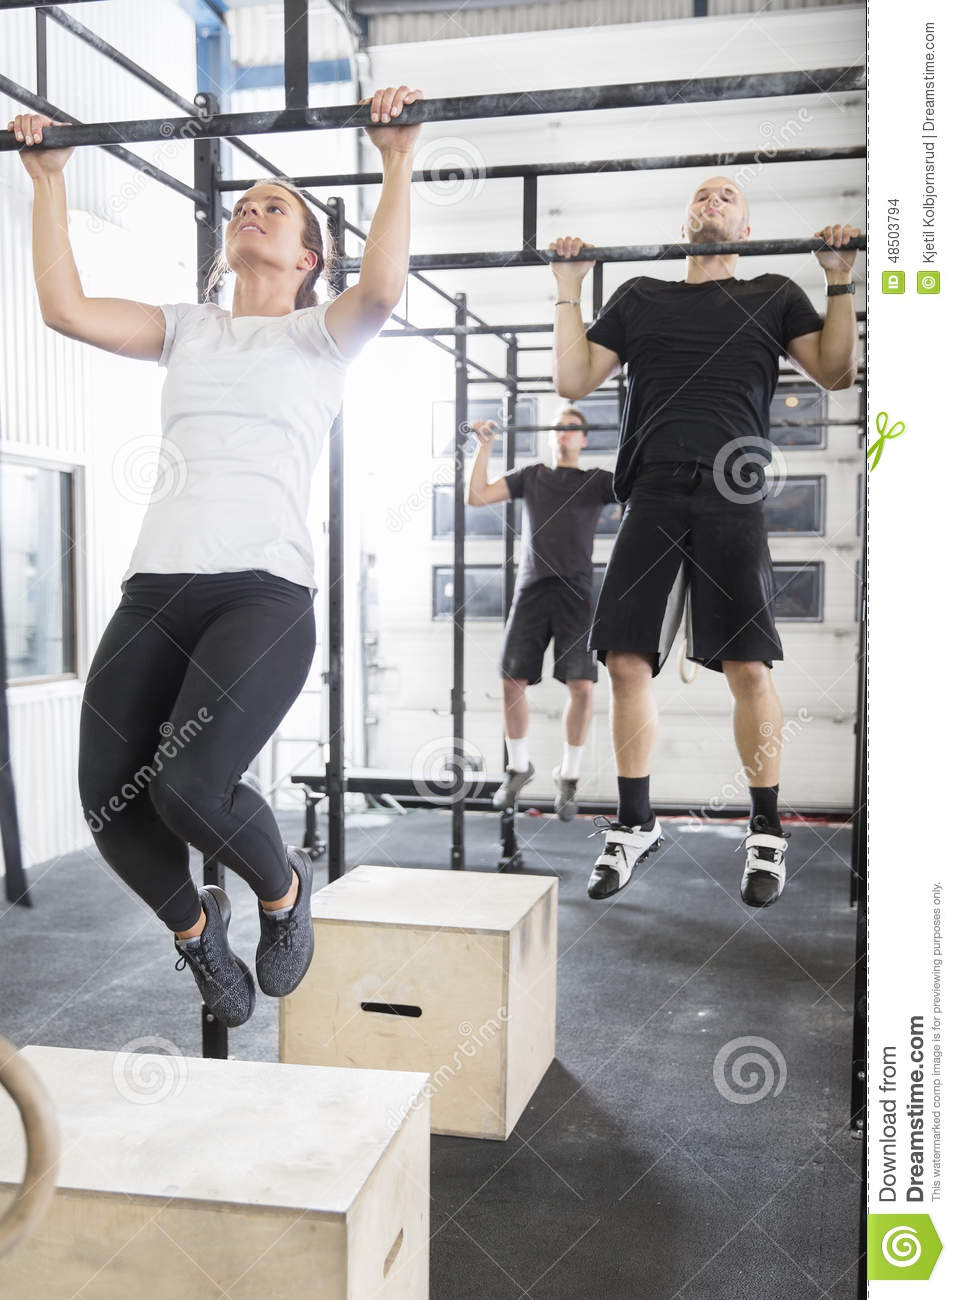 Workout team trains pullups at fitness gym stock photo image of